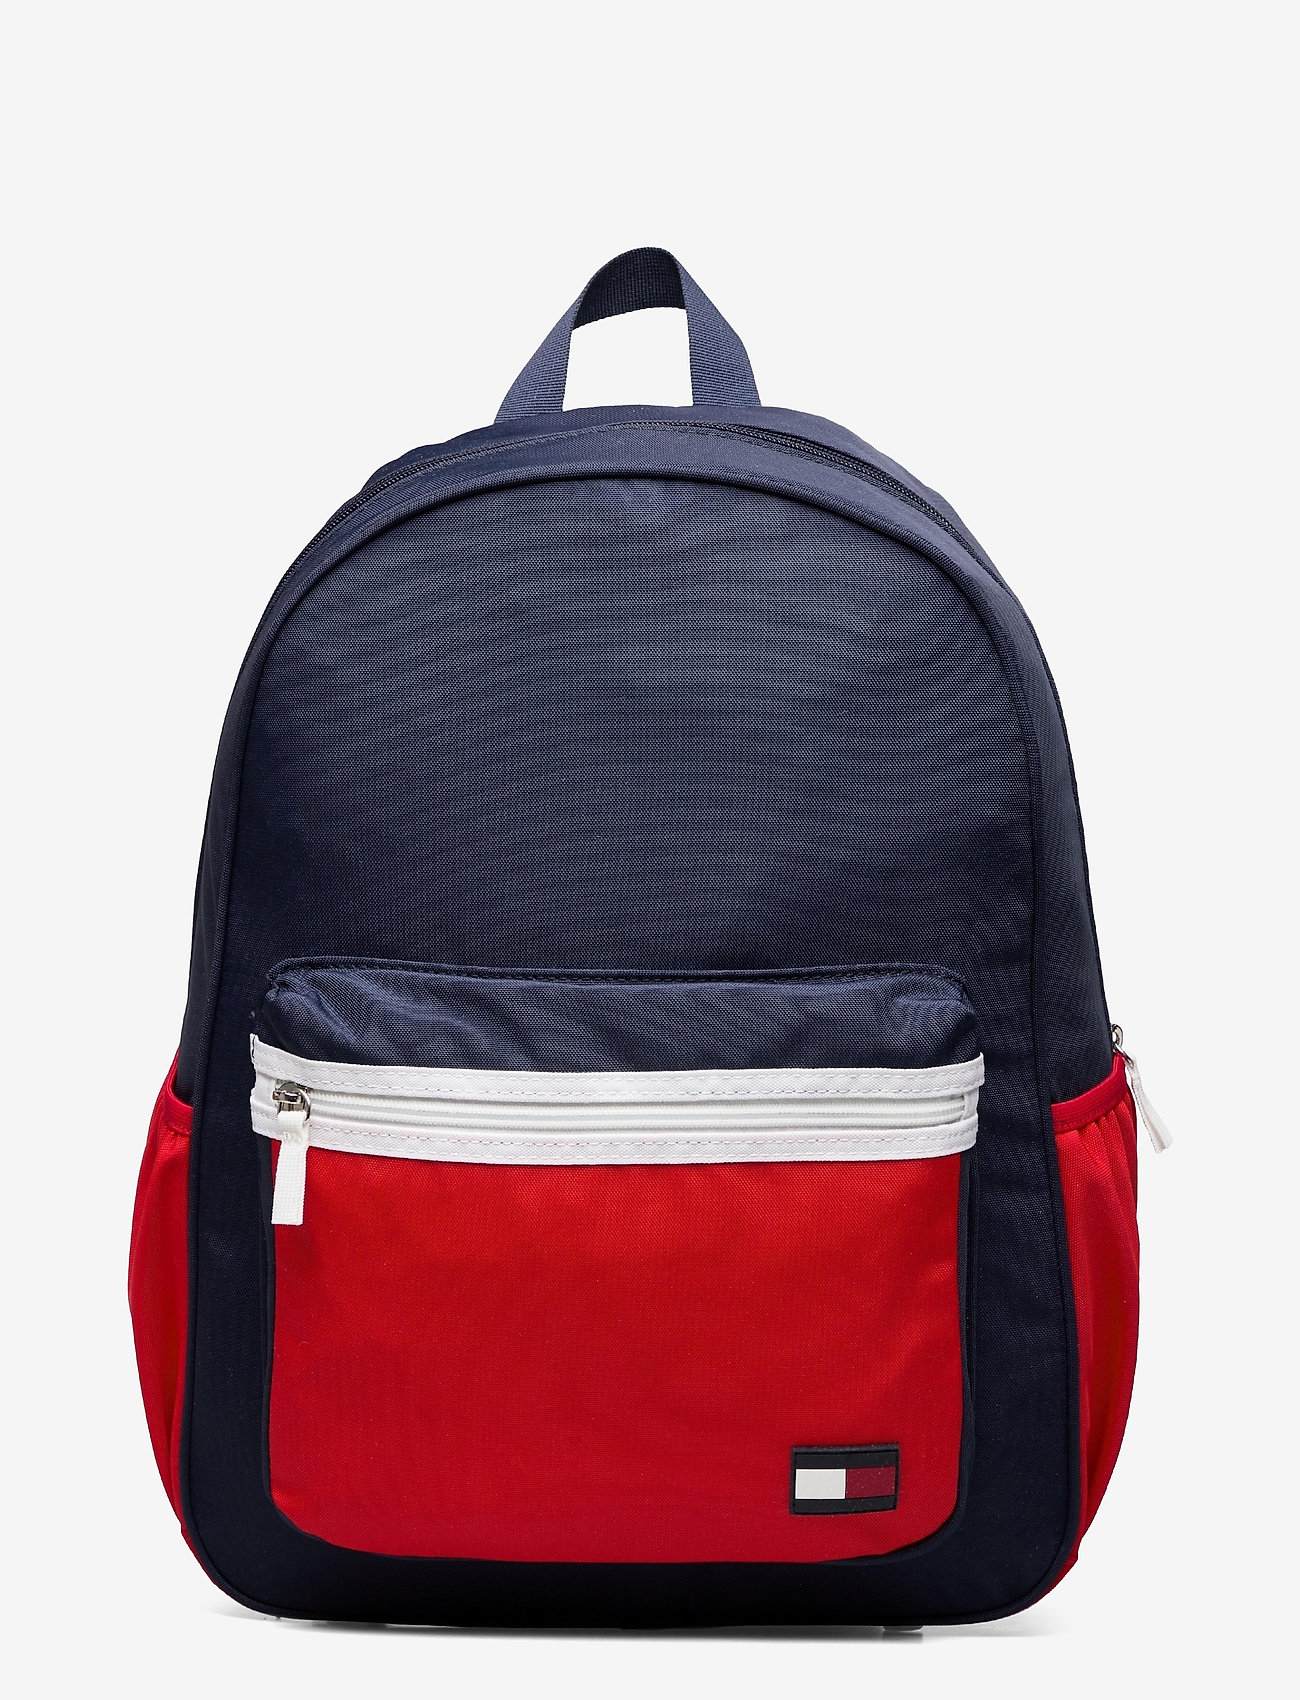 Tommy Hilfiger - NEW ALEX BACKPACK - backpacks - corporate - 1